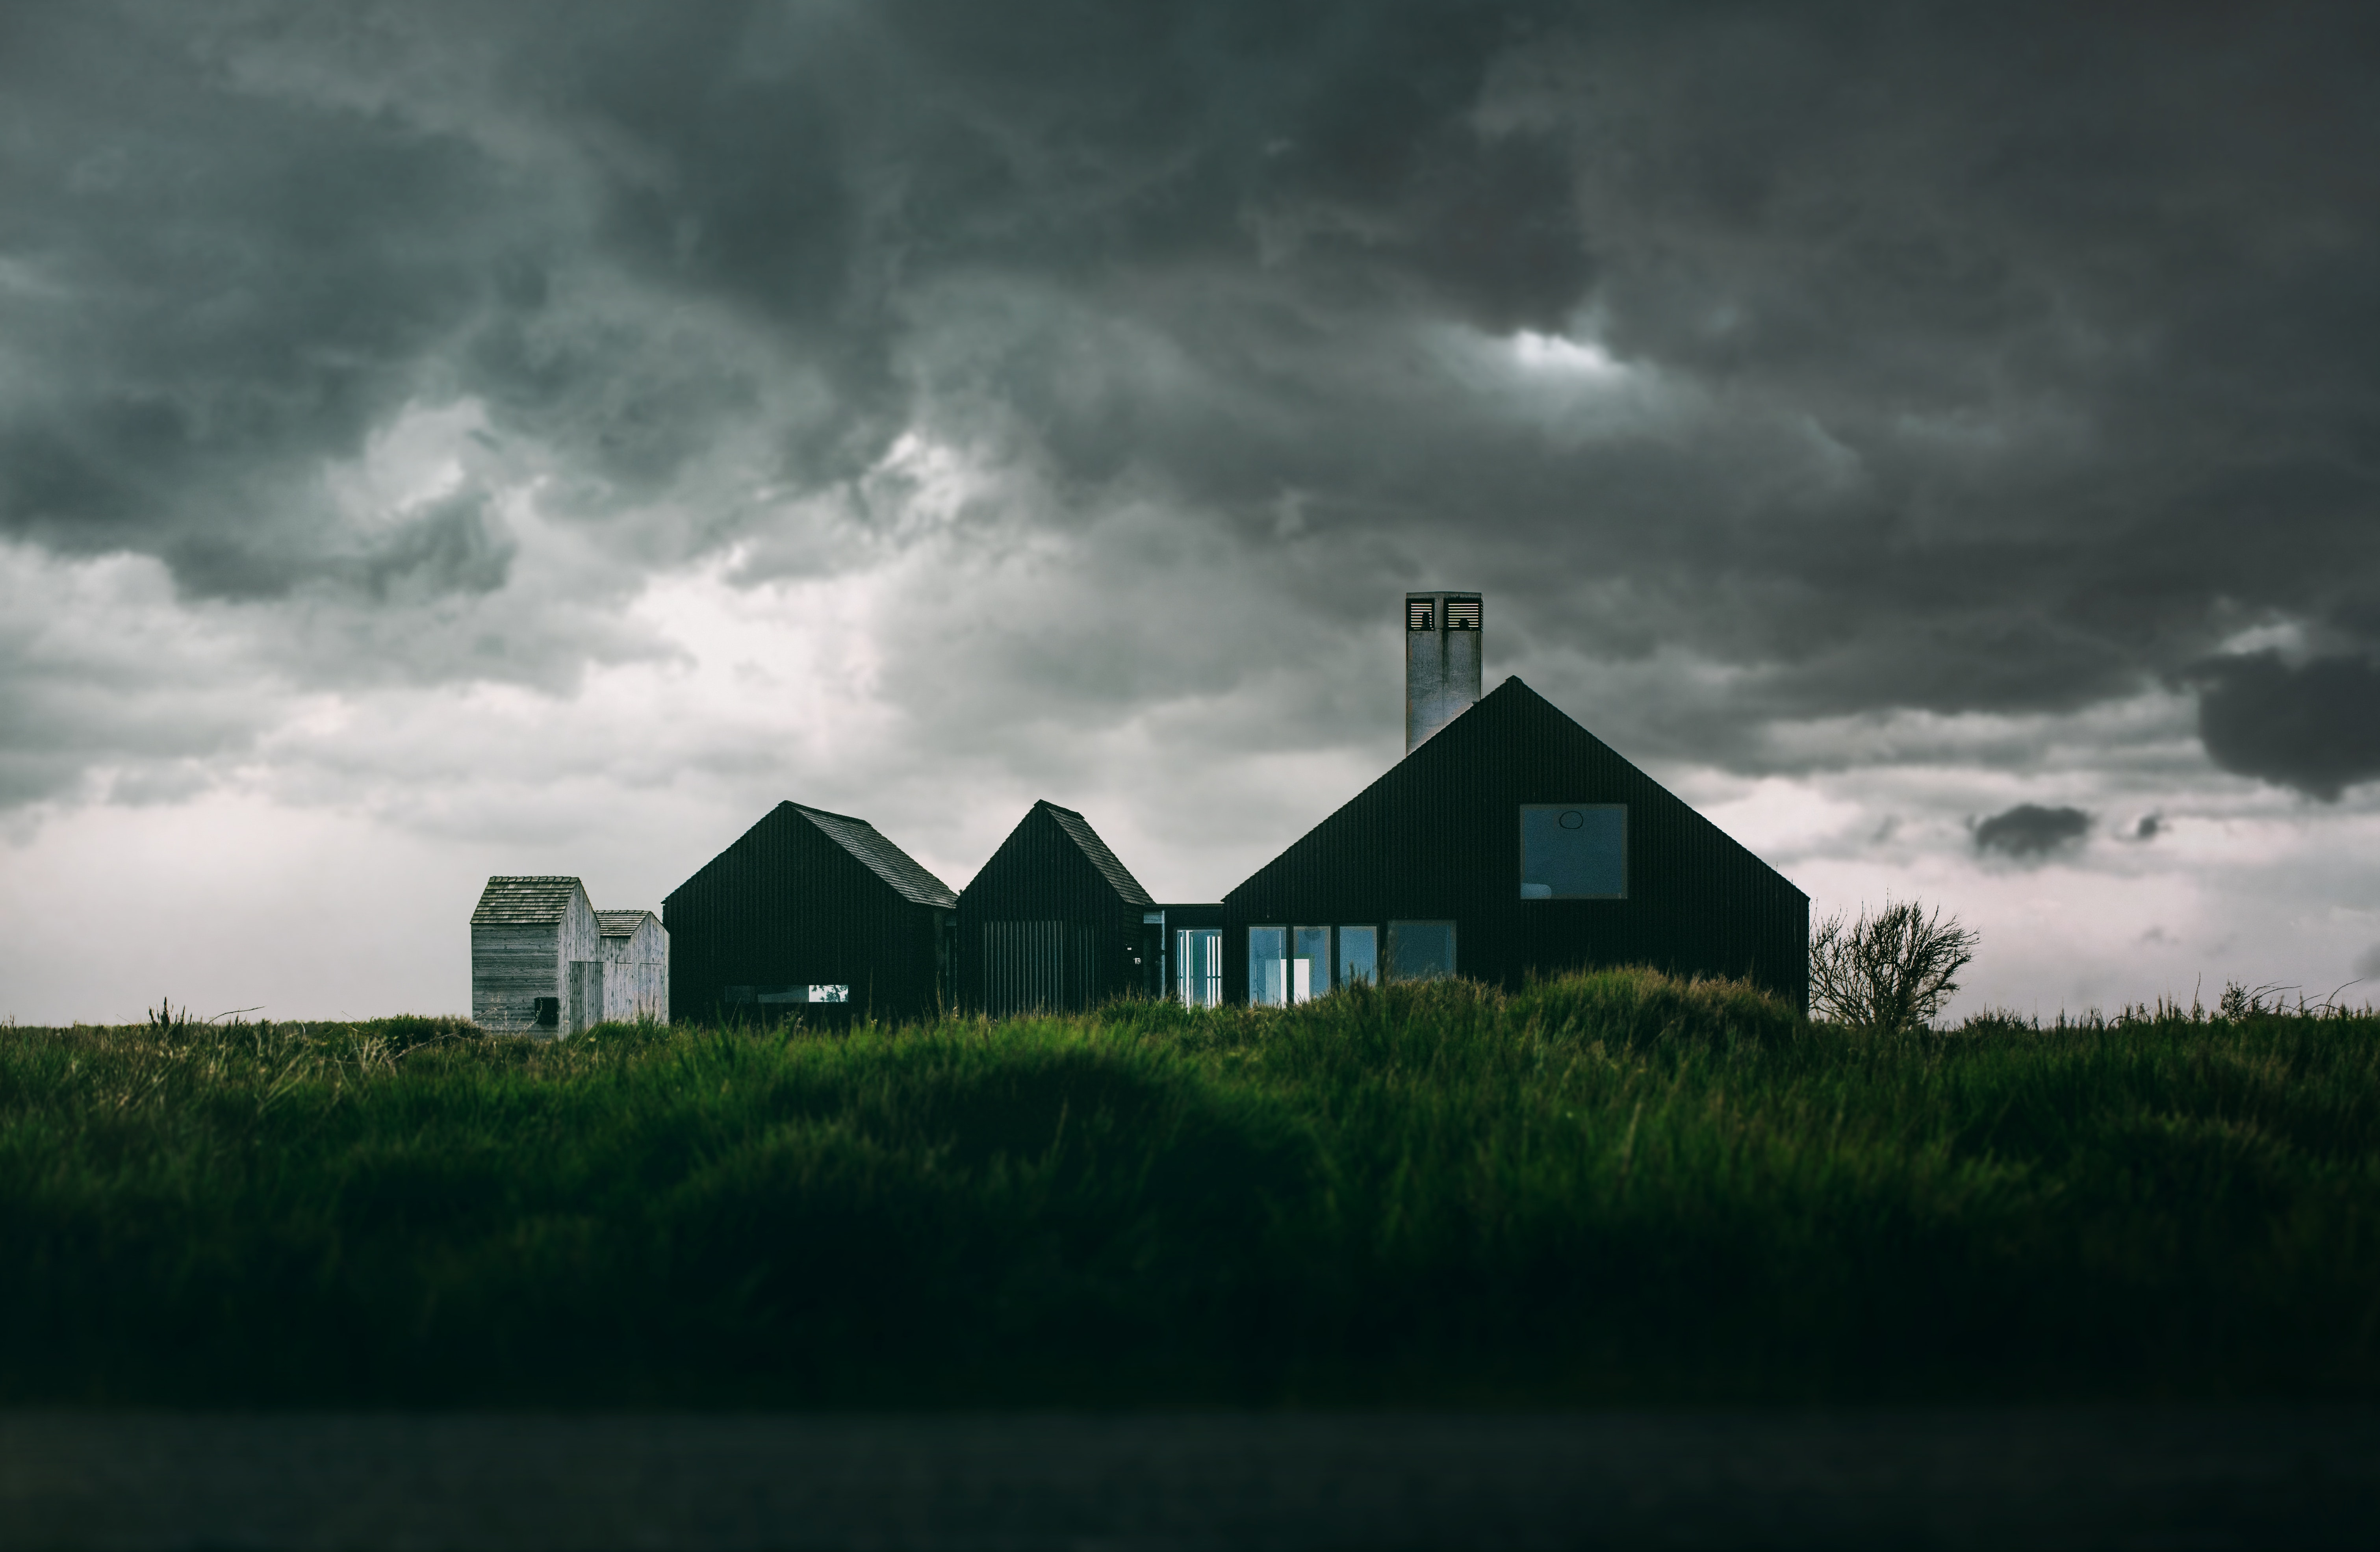 Water Reflection Photography Black And White Brown Grey Barn House ...